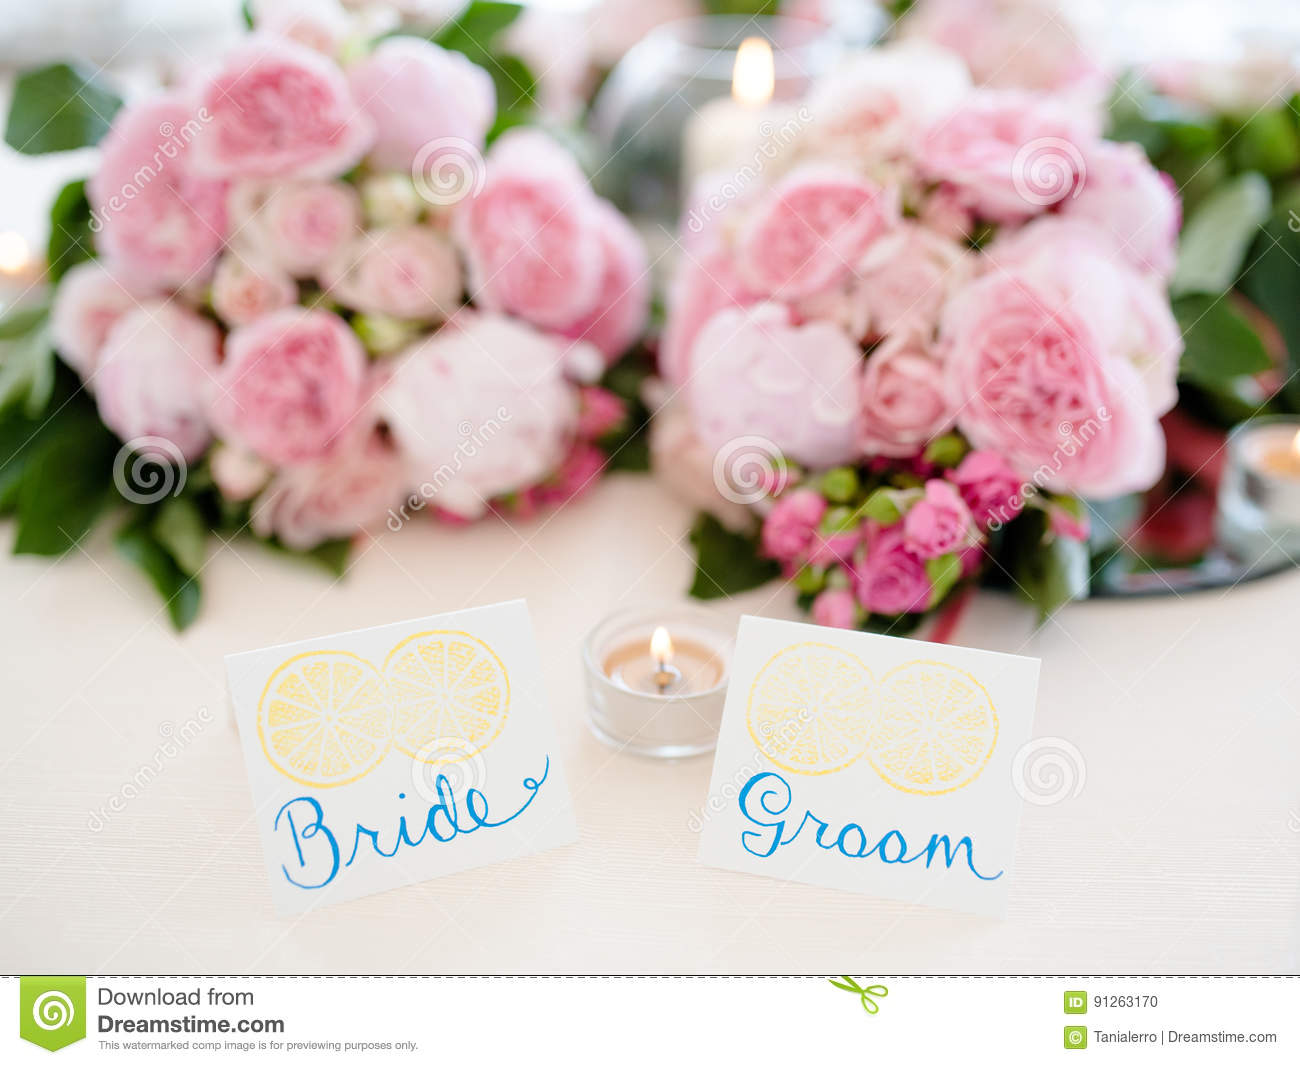 Download Bride And Groom Table Setting Stock Photo   Image Of Celebration,  Nuptial: 91263170